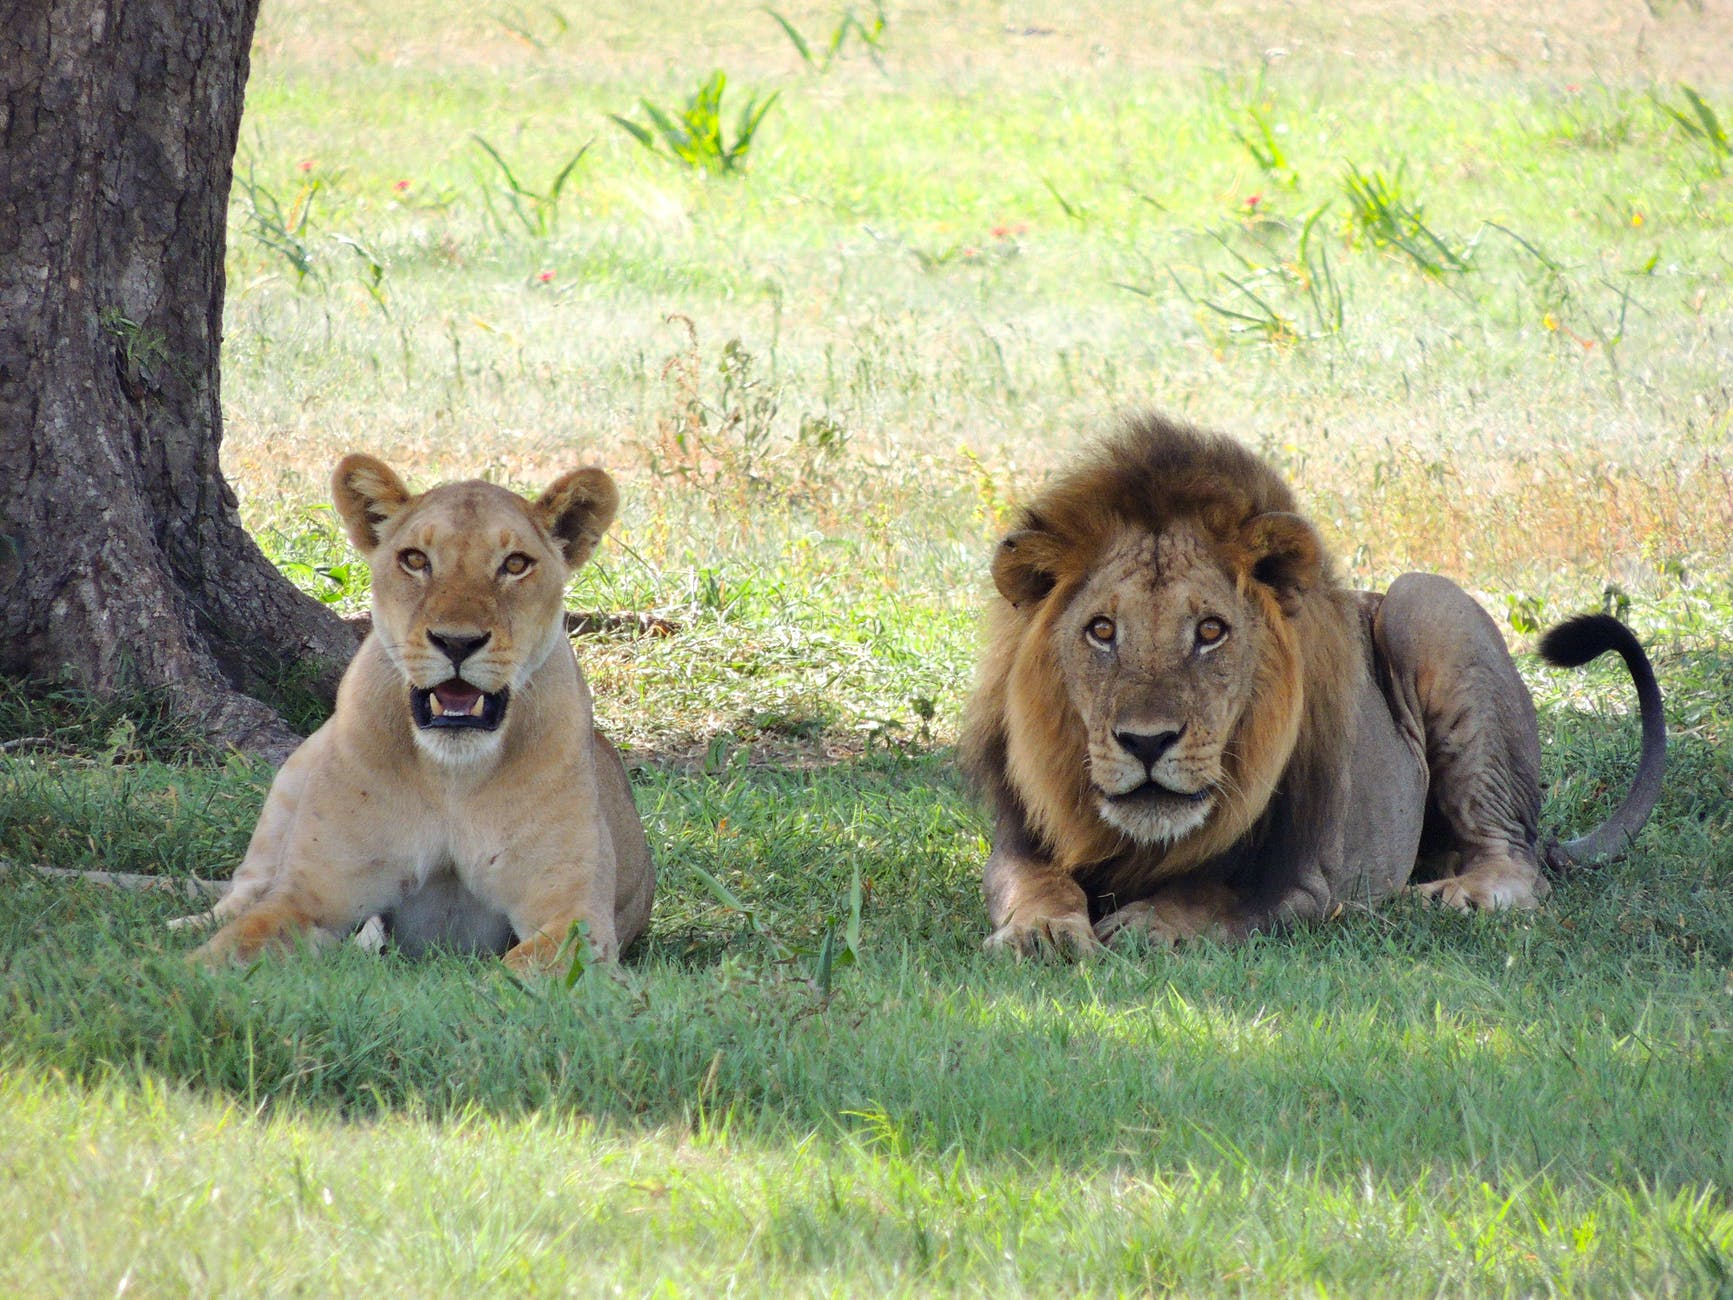 How long do lions live in wild?